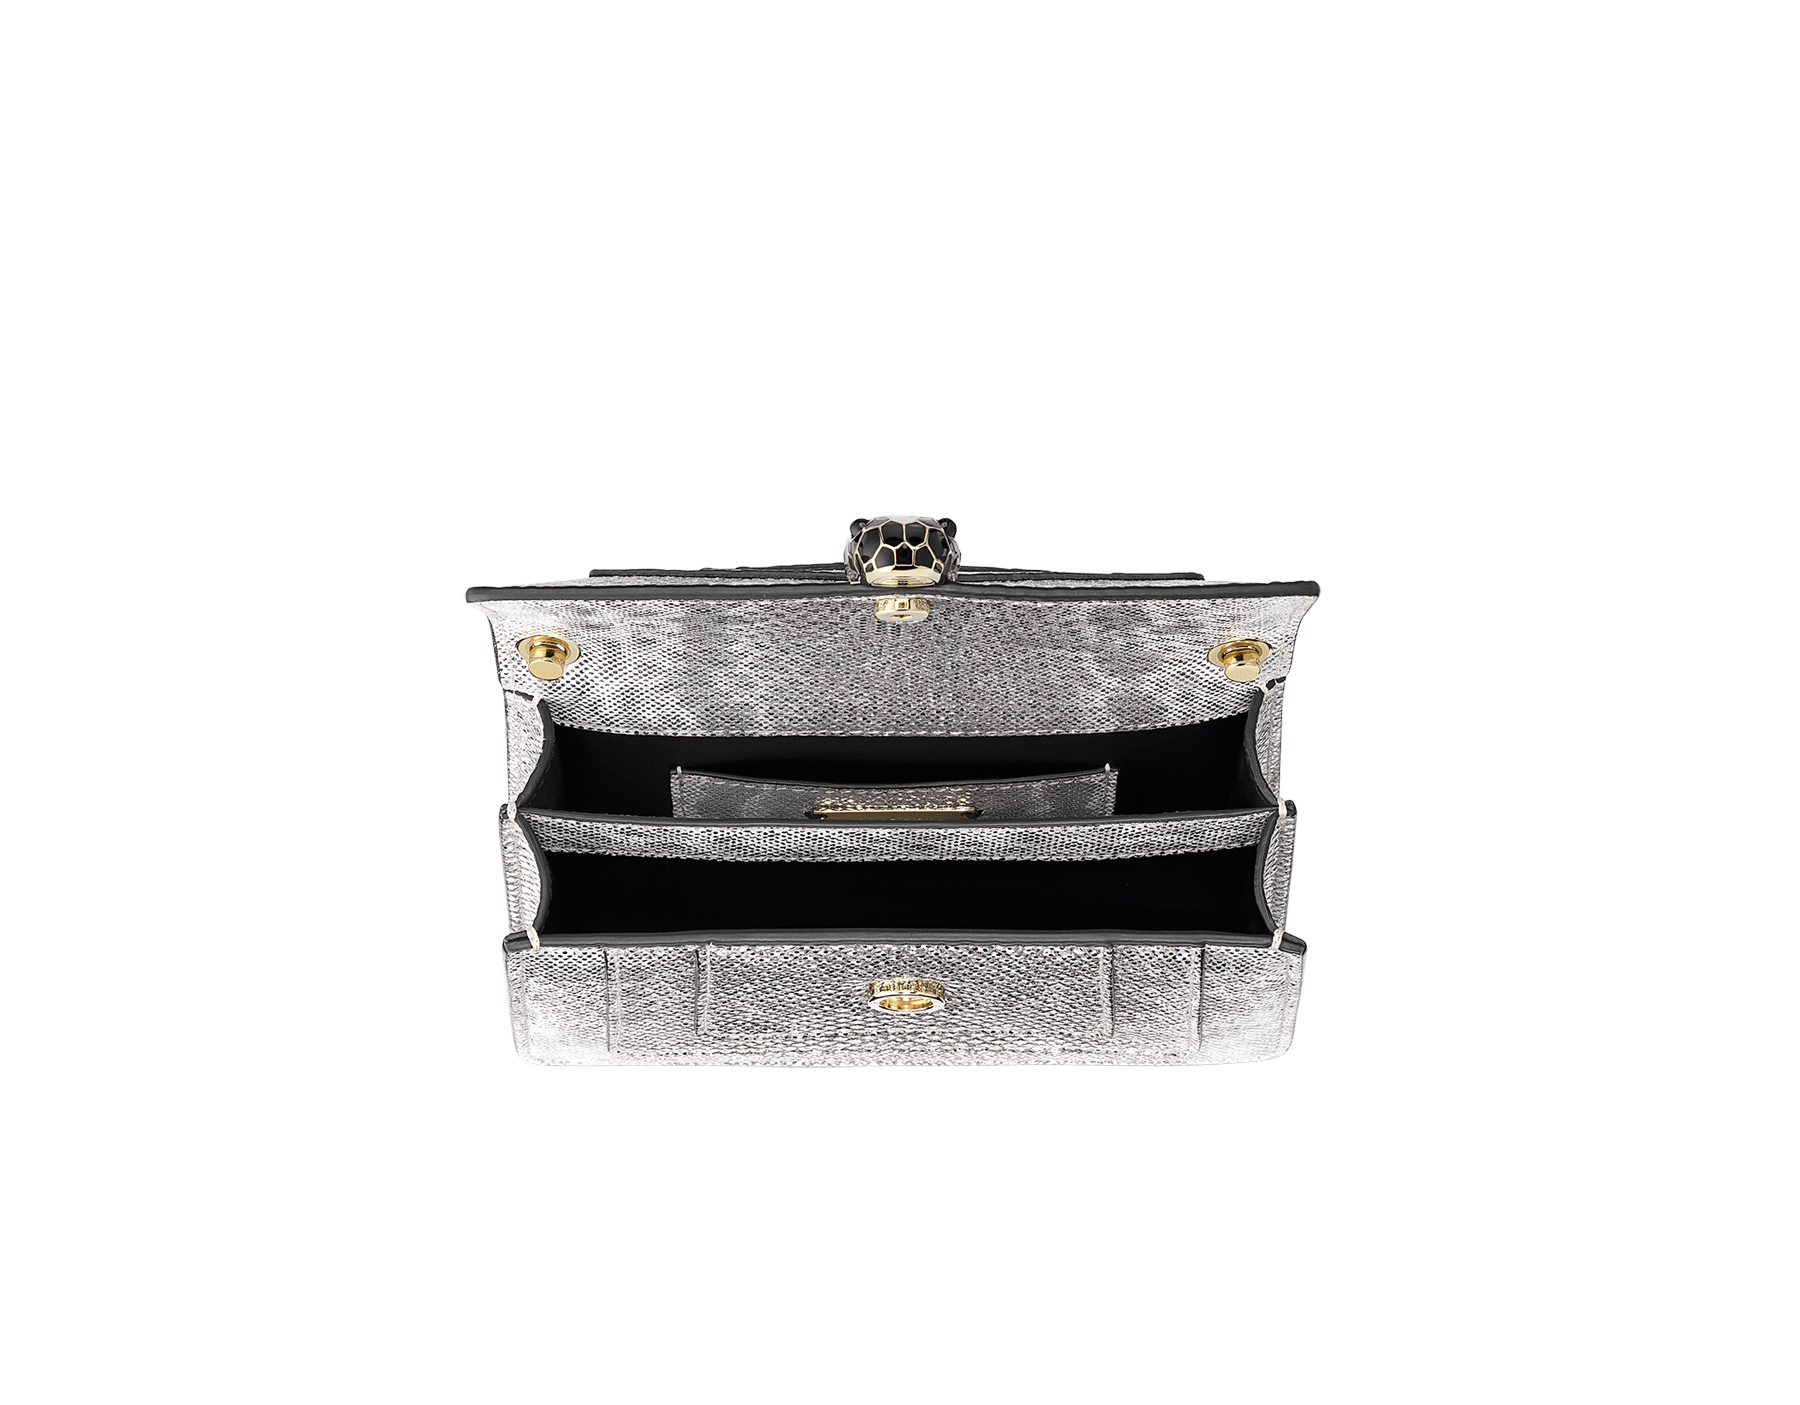 Serpenti Forever mini crossbody bag in white agate metallic karung skin. Brass light gold-plated snake head closure in black and white enamel with black onyx eyes. 986-MK image 4